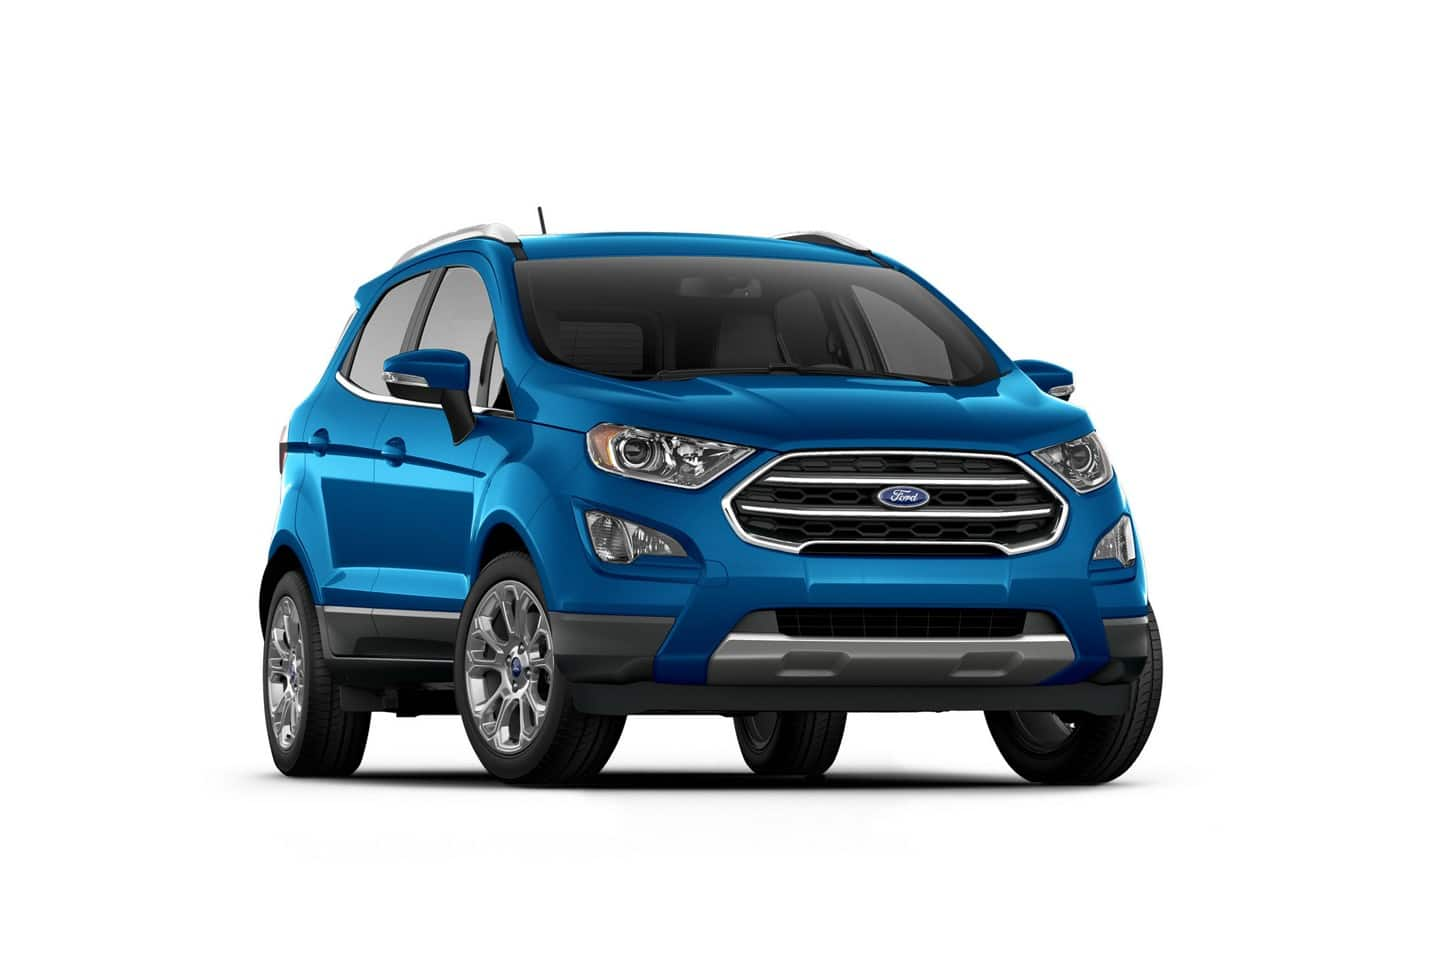 38 All New 2019 Ford Ecosport Release Date